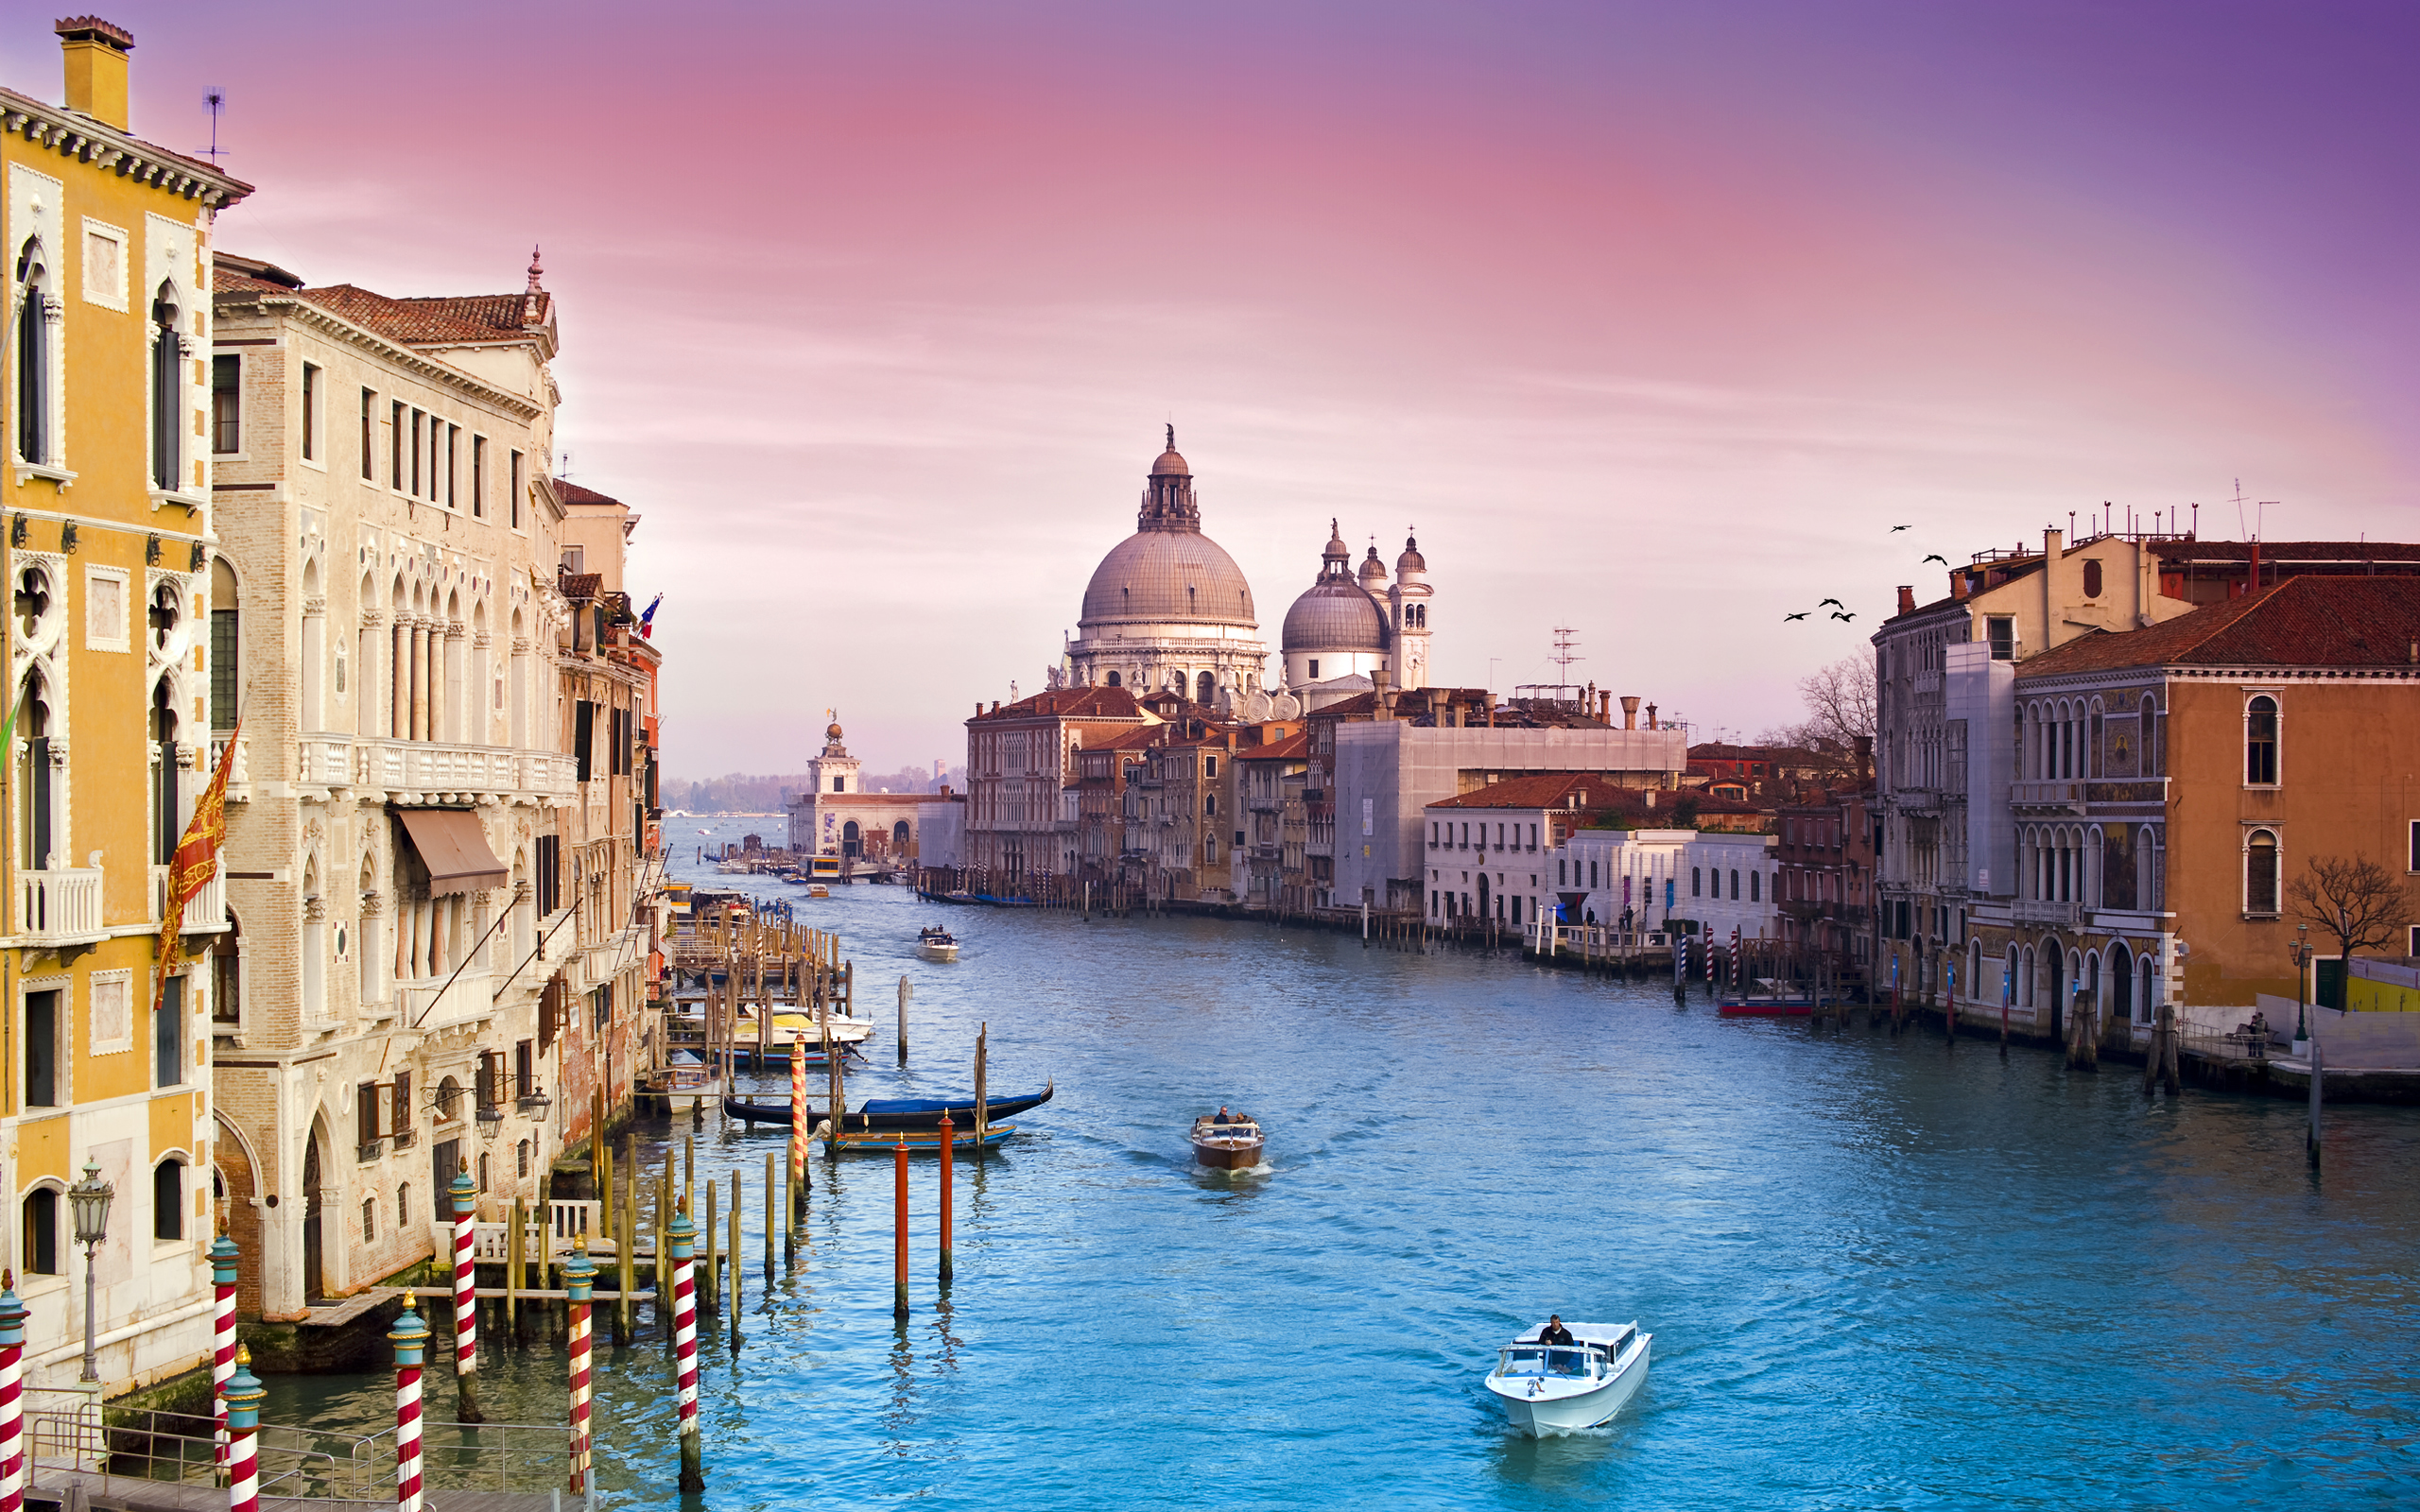 133406 Venice Grand Canal Architecture Italy City World 2560x1600